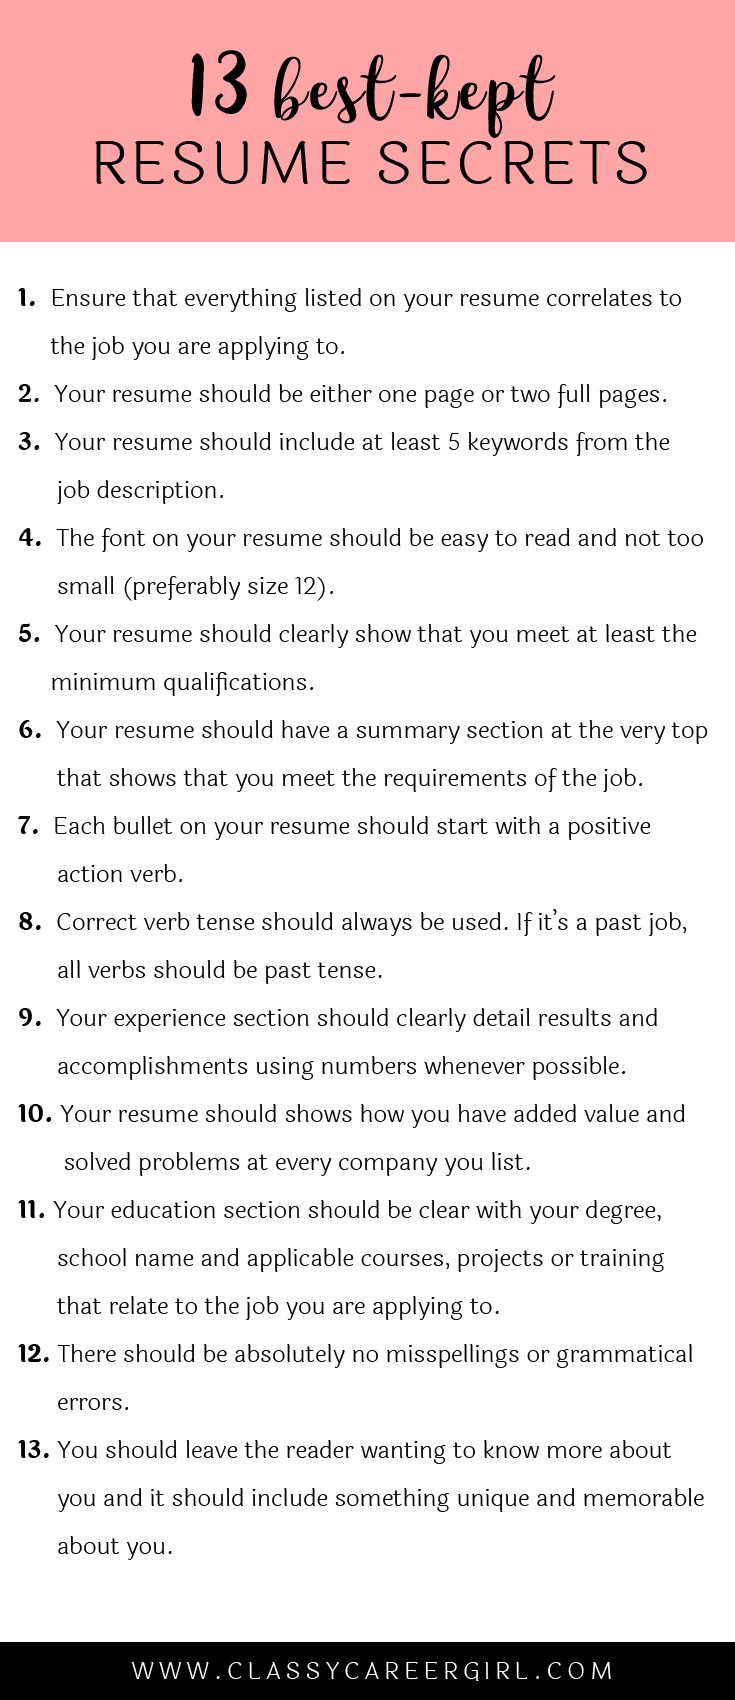 Opposenewapstandardsus  Pleasant  Ideas About Resume On Pinterest  Cv Format Resume Cv And  With Engaging Some Hiring Managers Will Toss Your Resume Out If You Dont Know These  With Awesome Entry Level Java Developer Resume Also Microsoft Office On Resume In Addition Resume For Barista And Online Resume Template Free As Well As What To Look For In A Resume Additionally Resume First Person From Pinterestcom With Opposenewapstandardsus  Engaging  Ideas About Resume On Pinterest  Cv Format Resume Cv And  With Awesome Some Hiring Managers Will Toss Your Resume Out If You Dont Know These  And Pleasant Entry Level Java Developer Resume Also Microsoft Office On Resume In Addition Resume For Barista From Pinterestcom